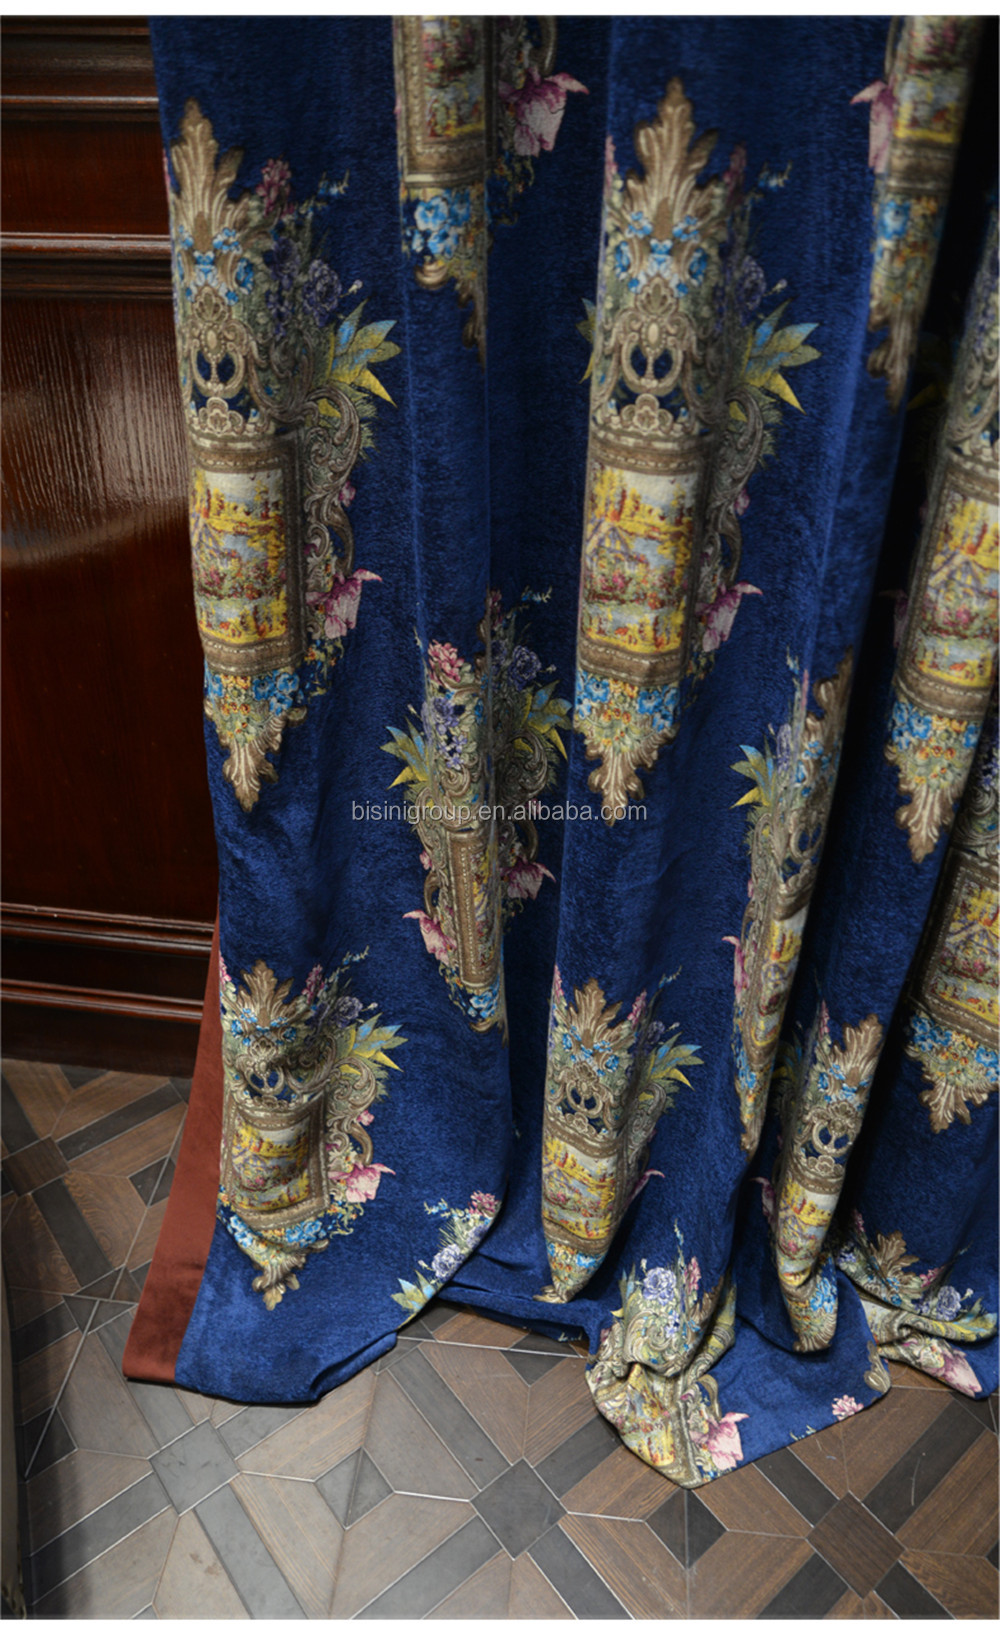 Luxury Noble Blue Jacquard Patterned Curtains For House Villia Window Blue Plaid With Yellow Sheer Curtain By12 A10006 View Luxury European Style Window Curtain Bisini Product Details From Zhaoqing Bisini Furniture And Decoration Co